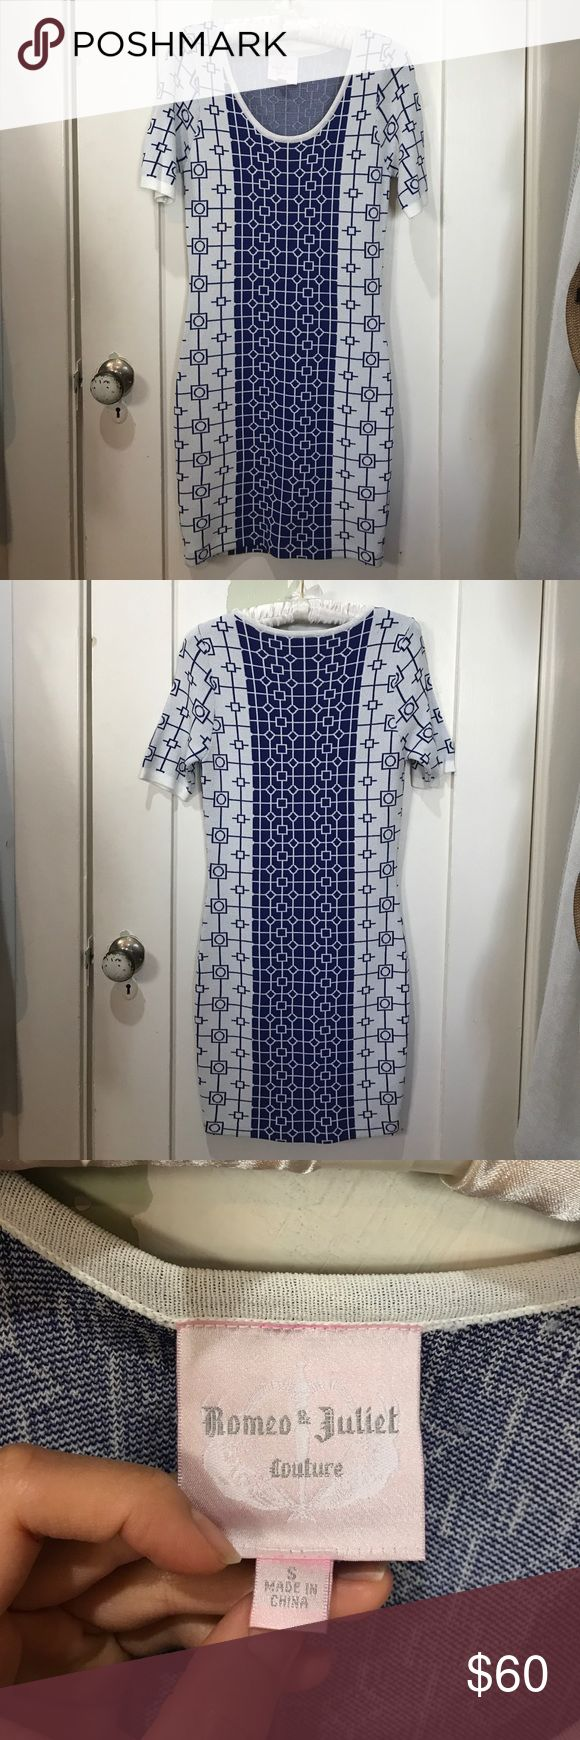 Romeo & Juliet Couture bodycon dress Blue and white bodycon dress. Size small but not super tight fitting. Never worn. NWOT. Romeo & Juliet Couture Dresses Mini